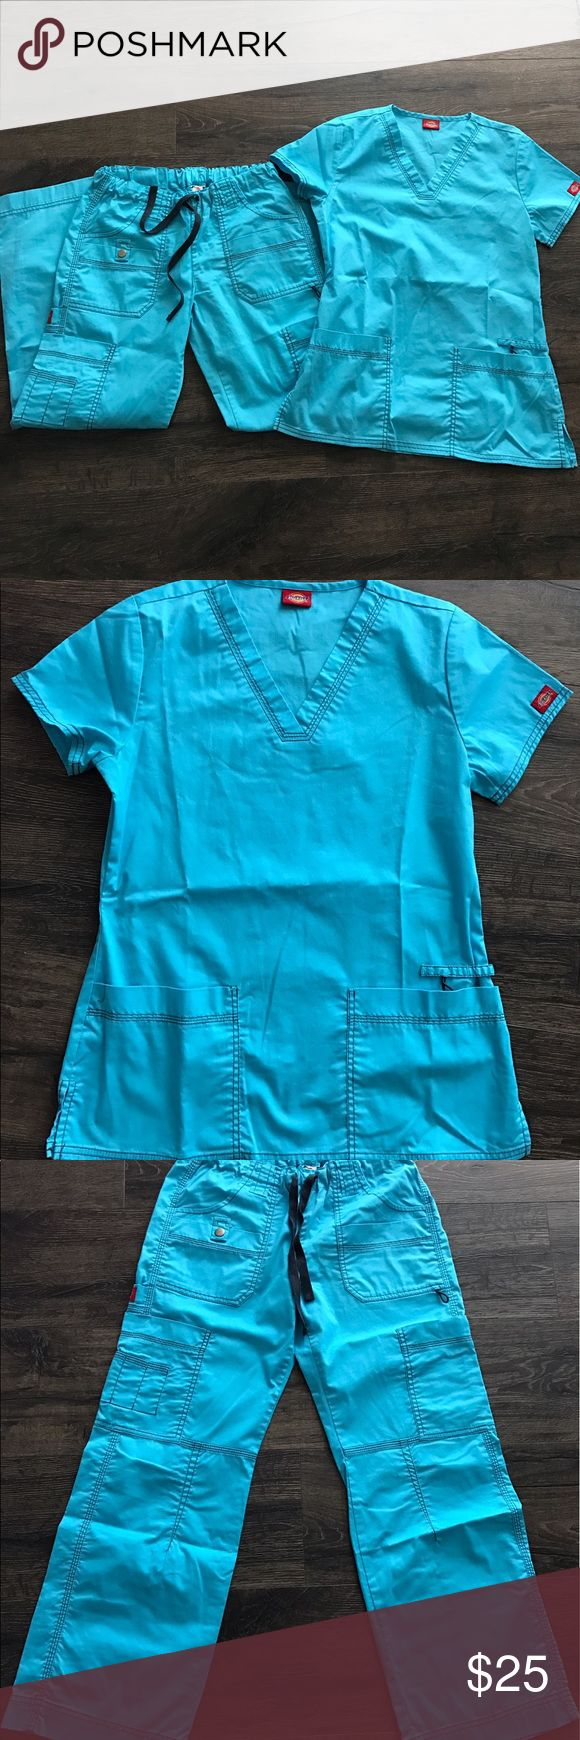 Dickies Women's V-Neck Top & Cargo Pant Scrub Set Size X-Small Icy Turquoise dickies v-neck top & Cargo pant set. Pants are Petite, doesn't have tags, no stains. Dickies Tops